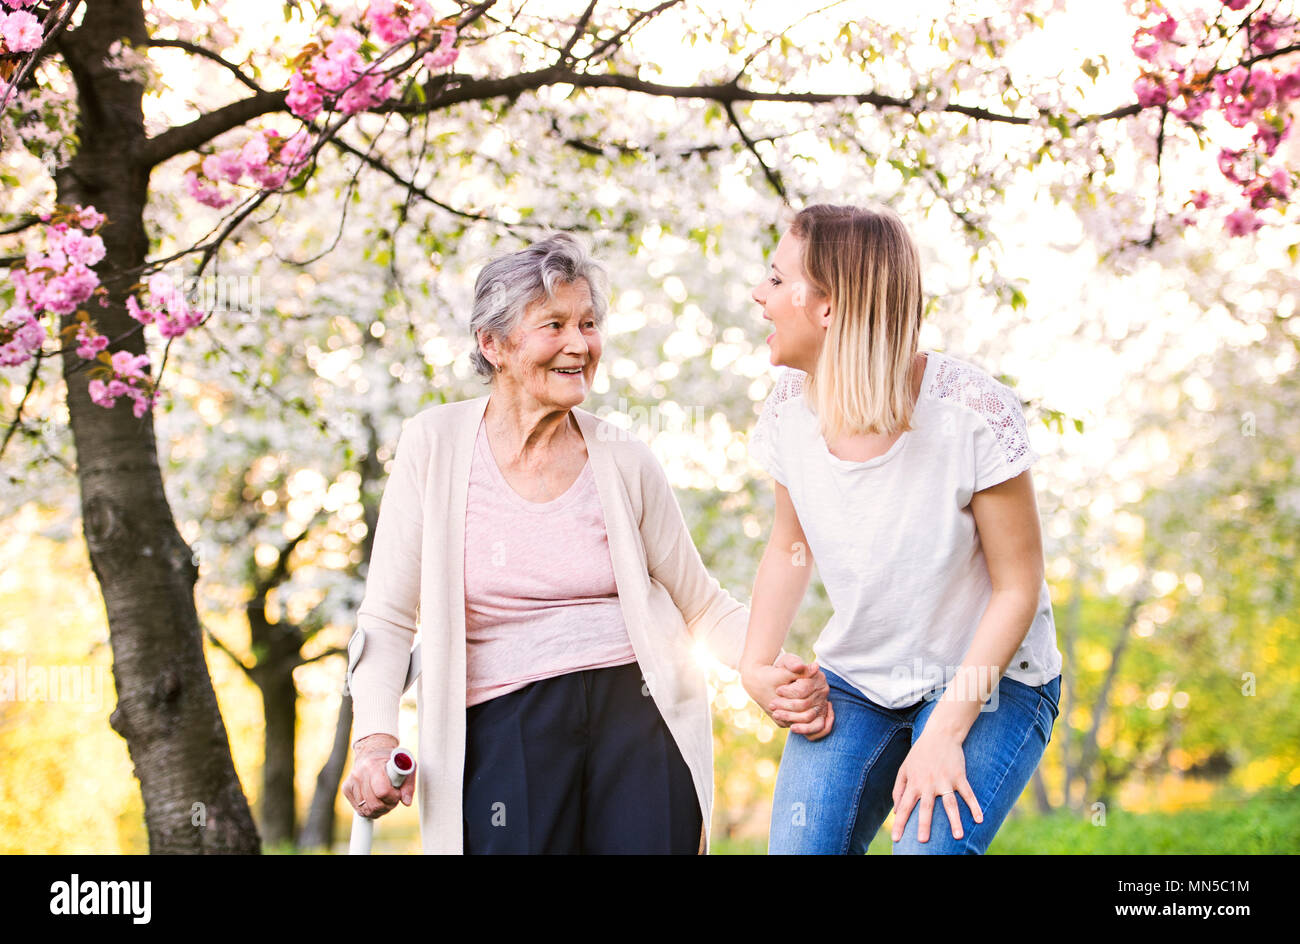 Elderly grandmother with forearm crutch and an adult granddaughter walking outside in spring nature. - Stock Image